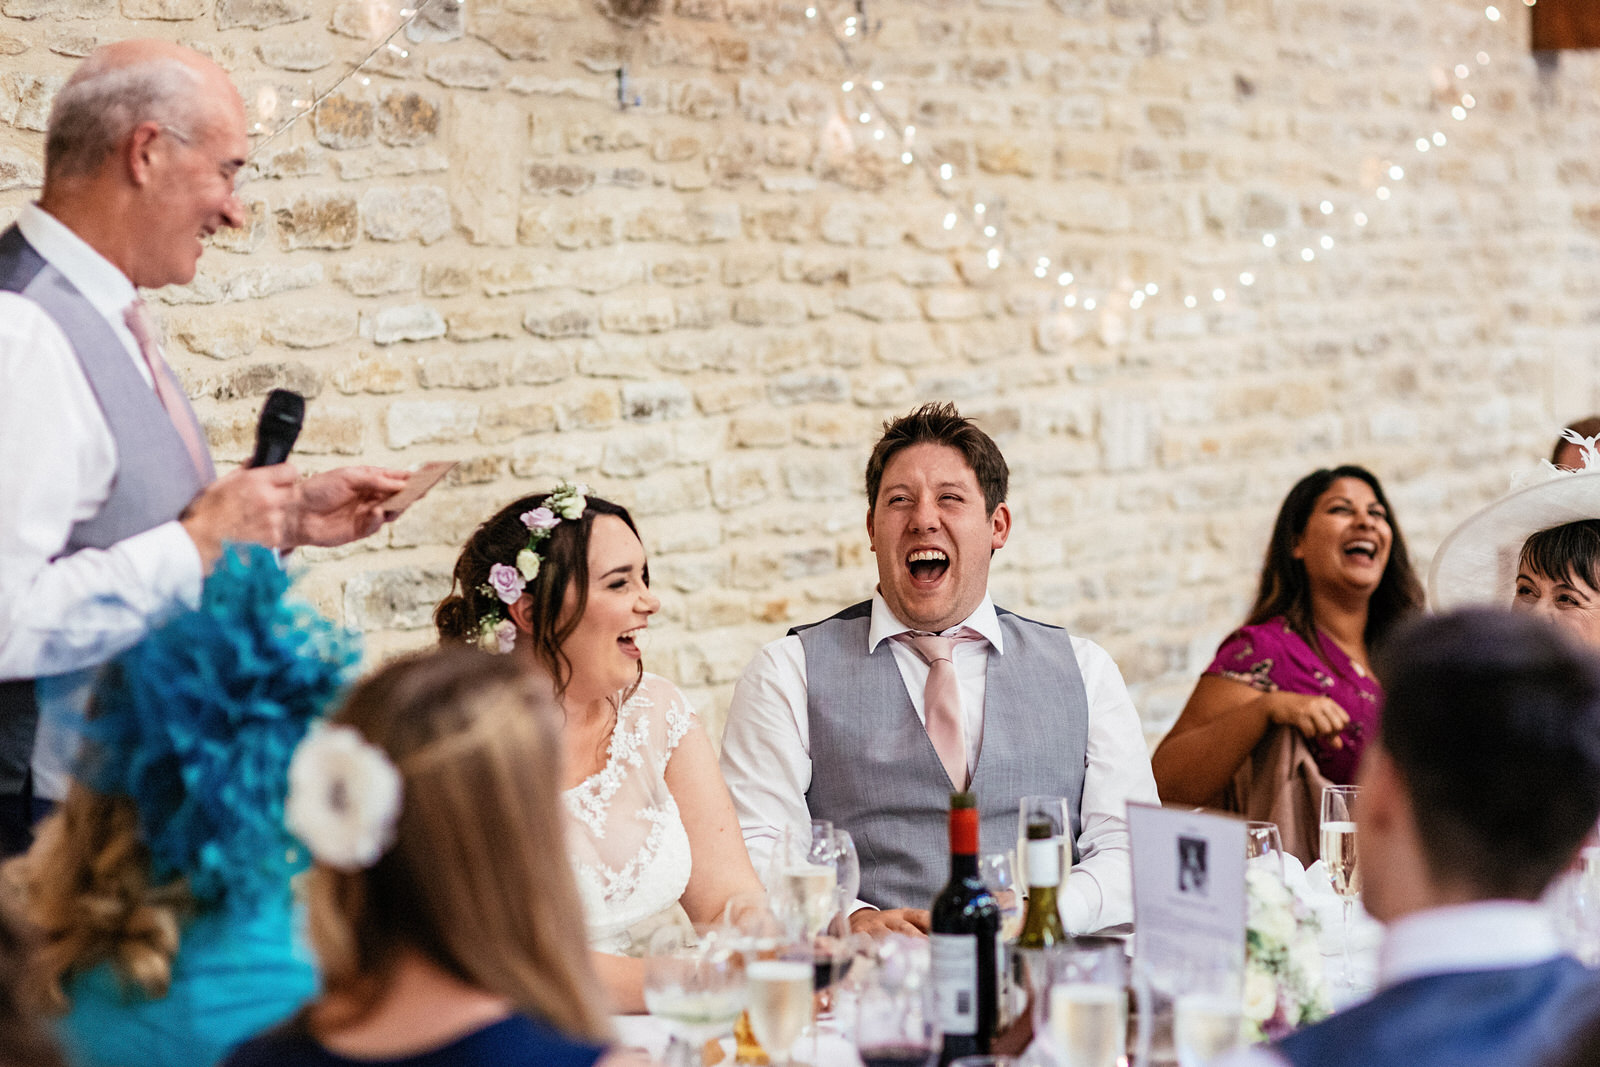 Winkworth-Farm-Wedding-Photographer-114.jpg